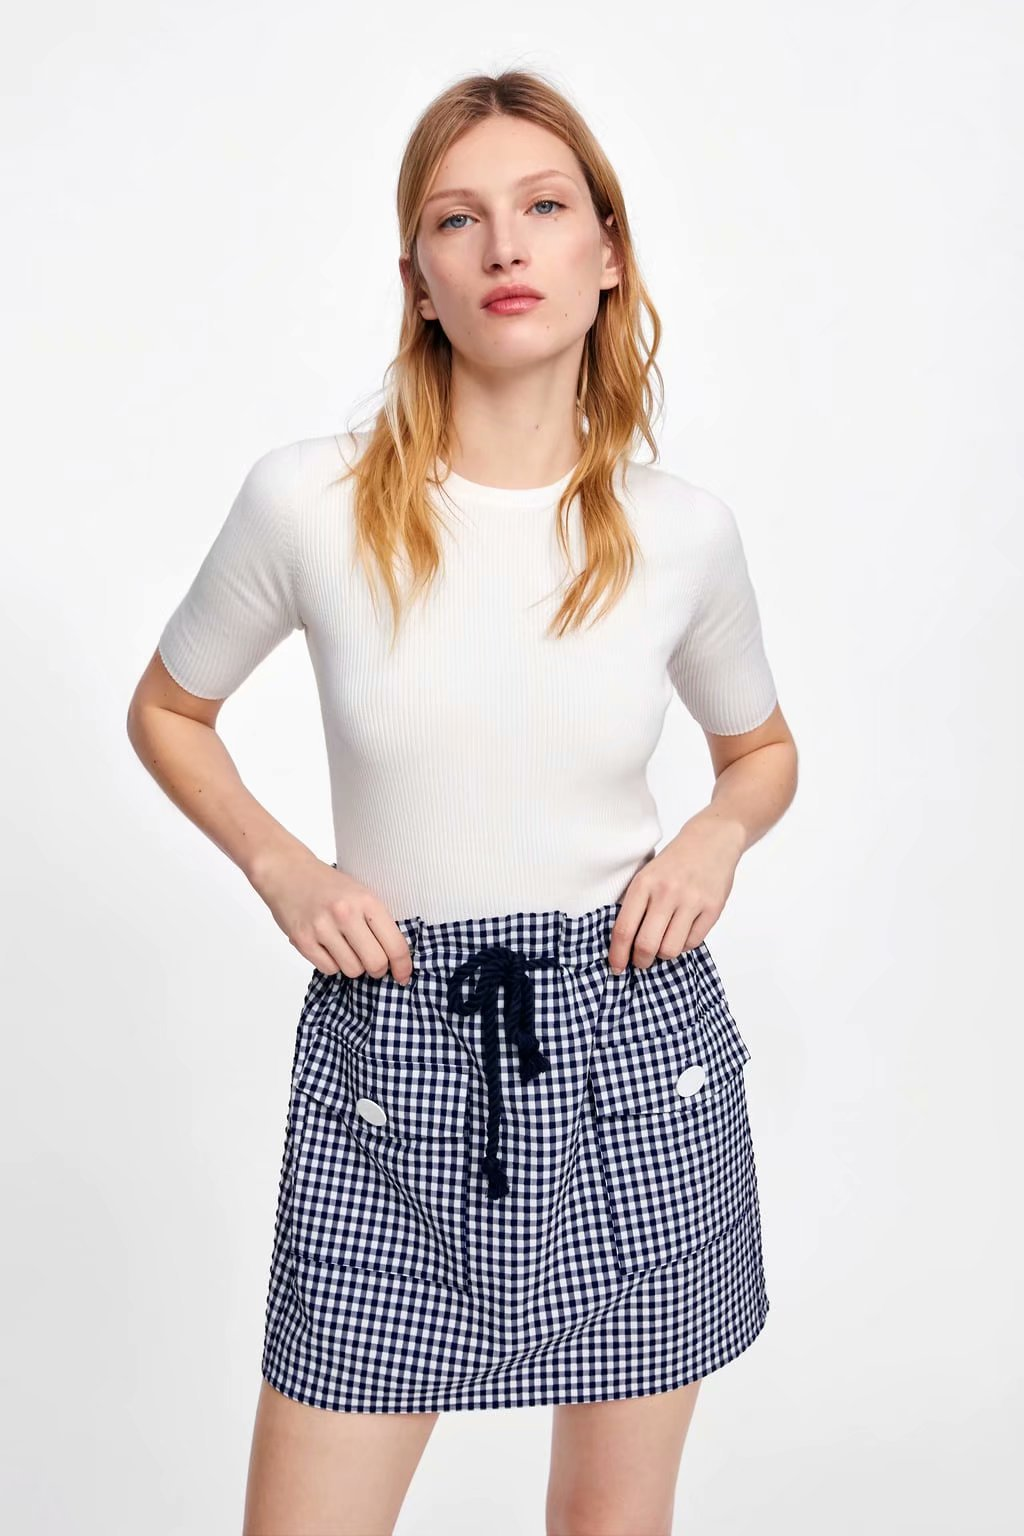 Western Style 2019 Summer New Style WOMEN'S Dress Retro Bud Waist High Waist Drawstring Pattern Mini Skirt Plaid Skirt Short Ski